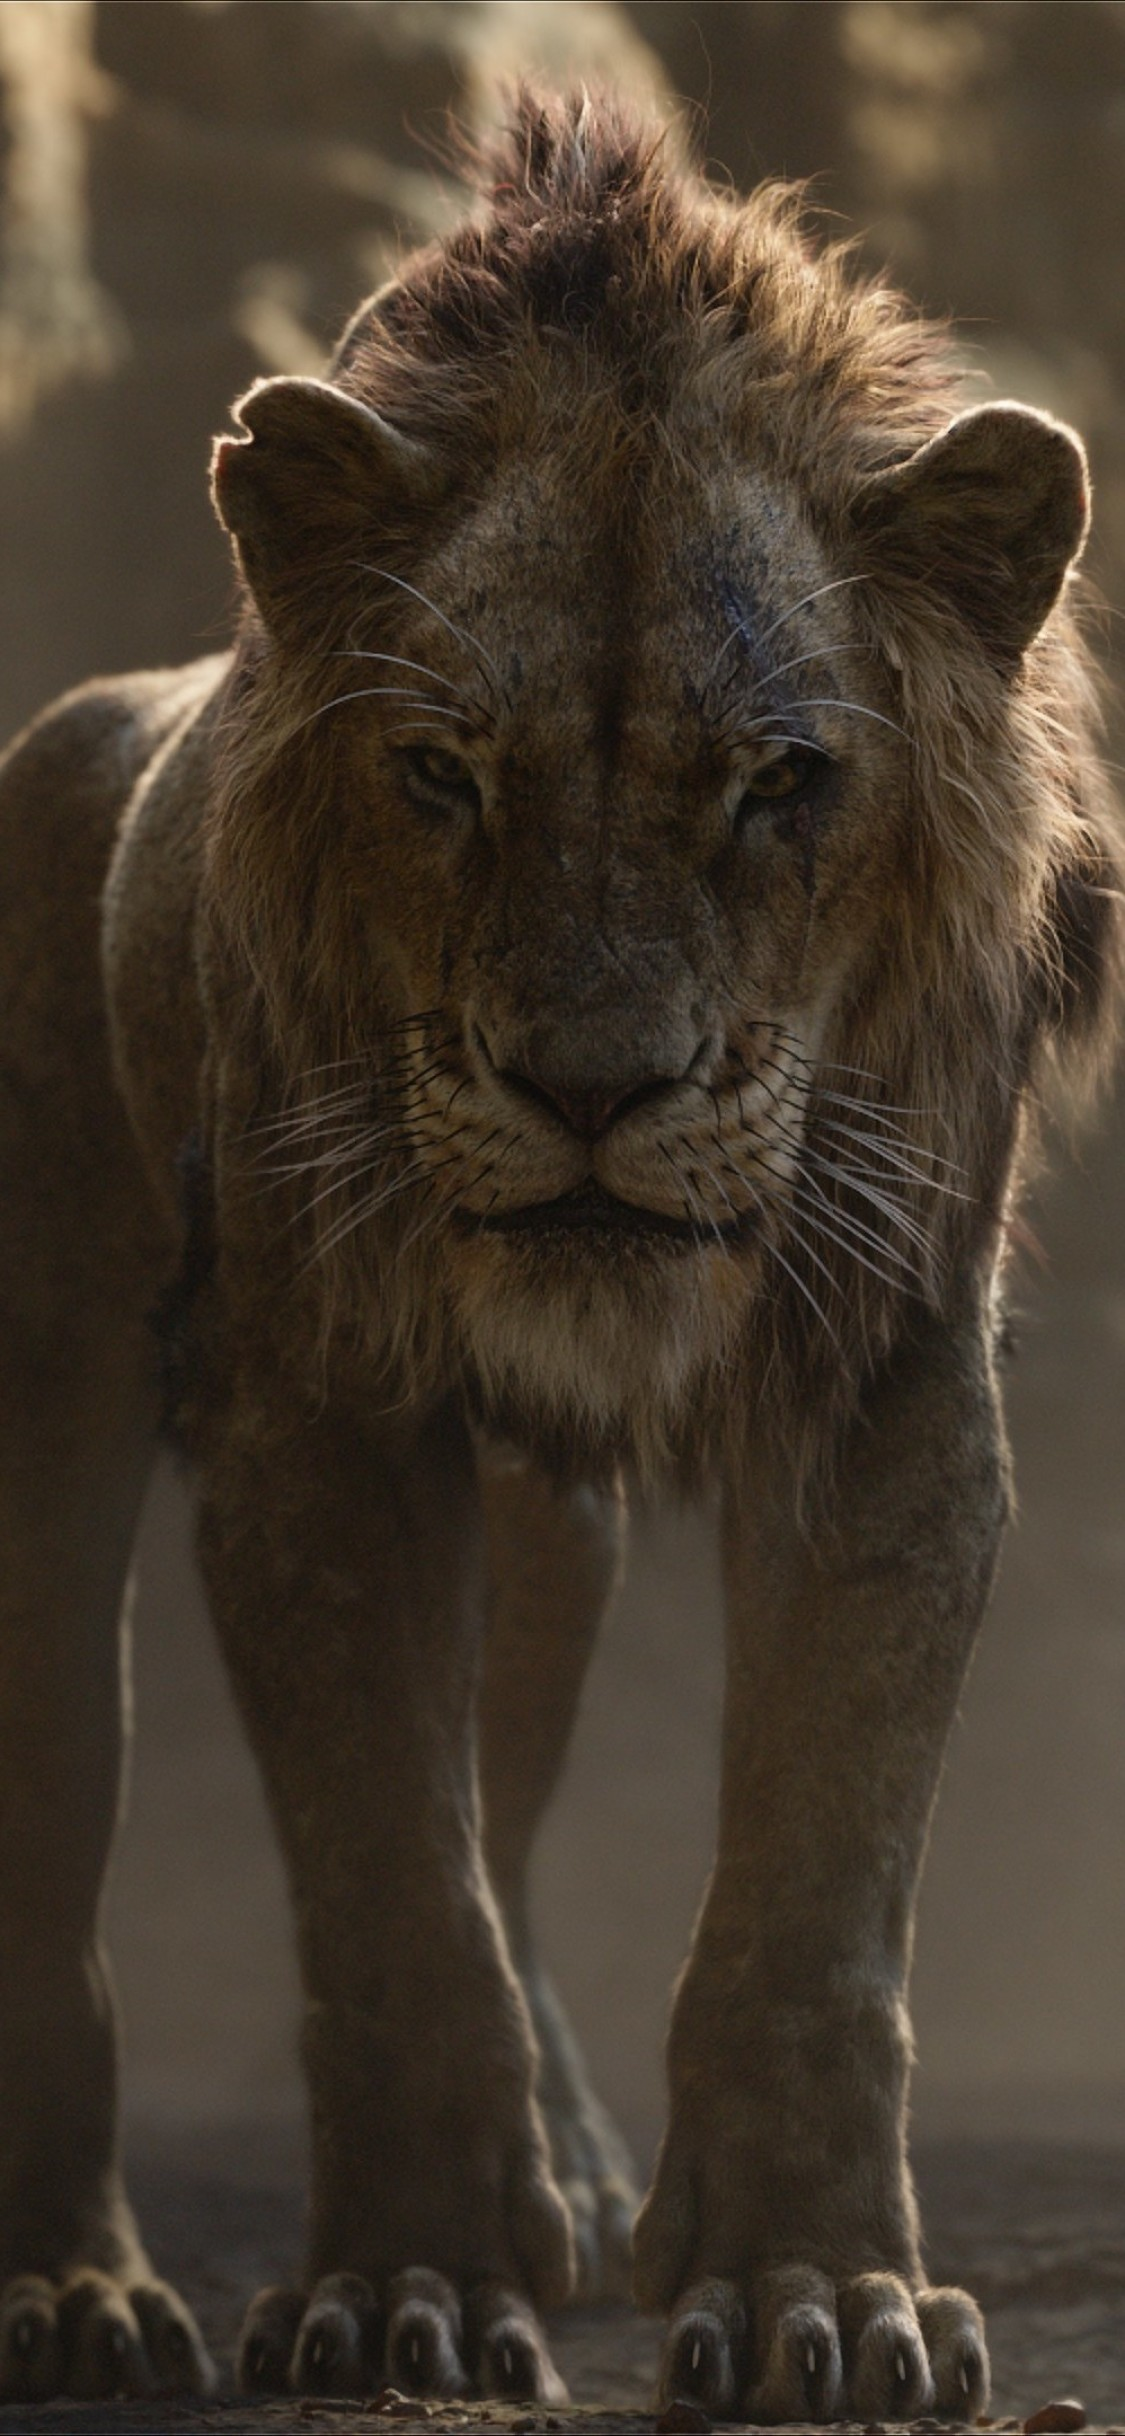 Scar From Lion King 2019 3255695 Hd Wallpaper Backgrounds Download